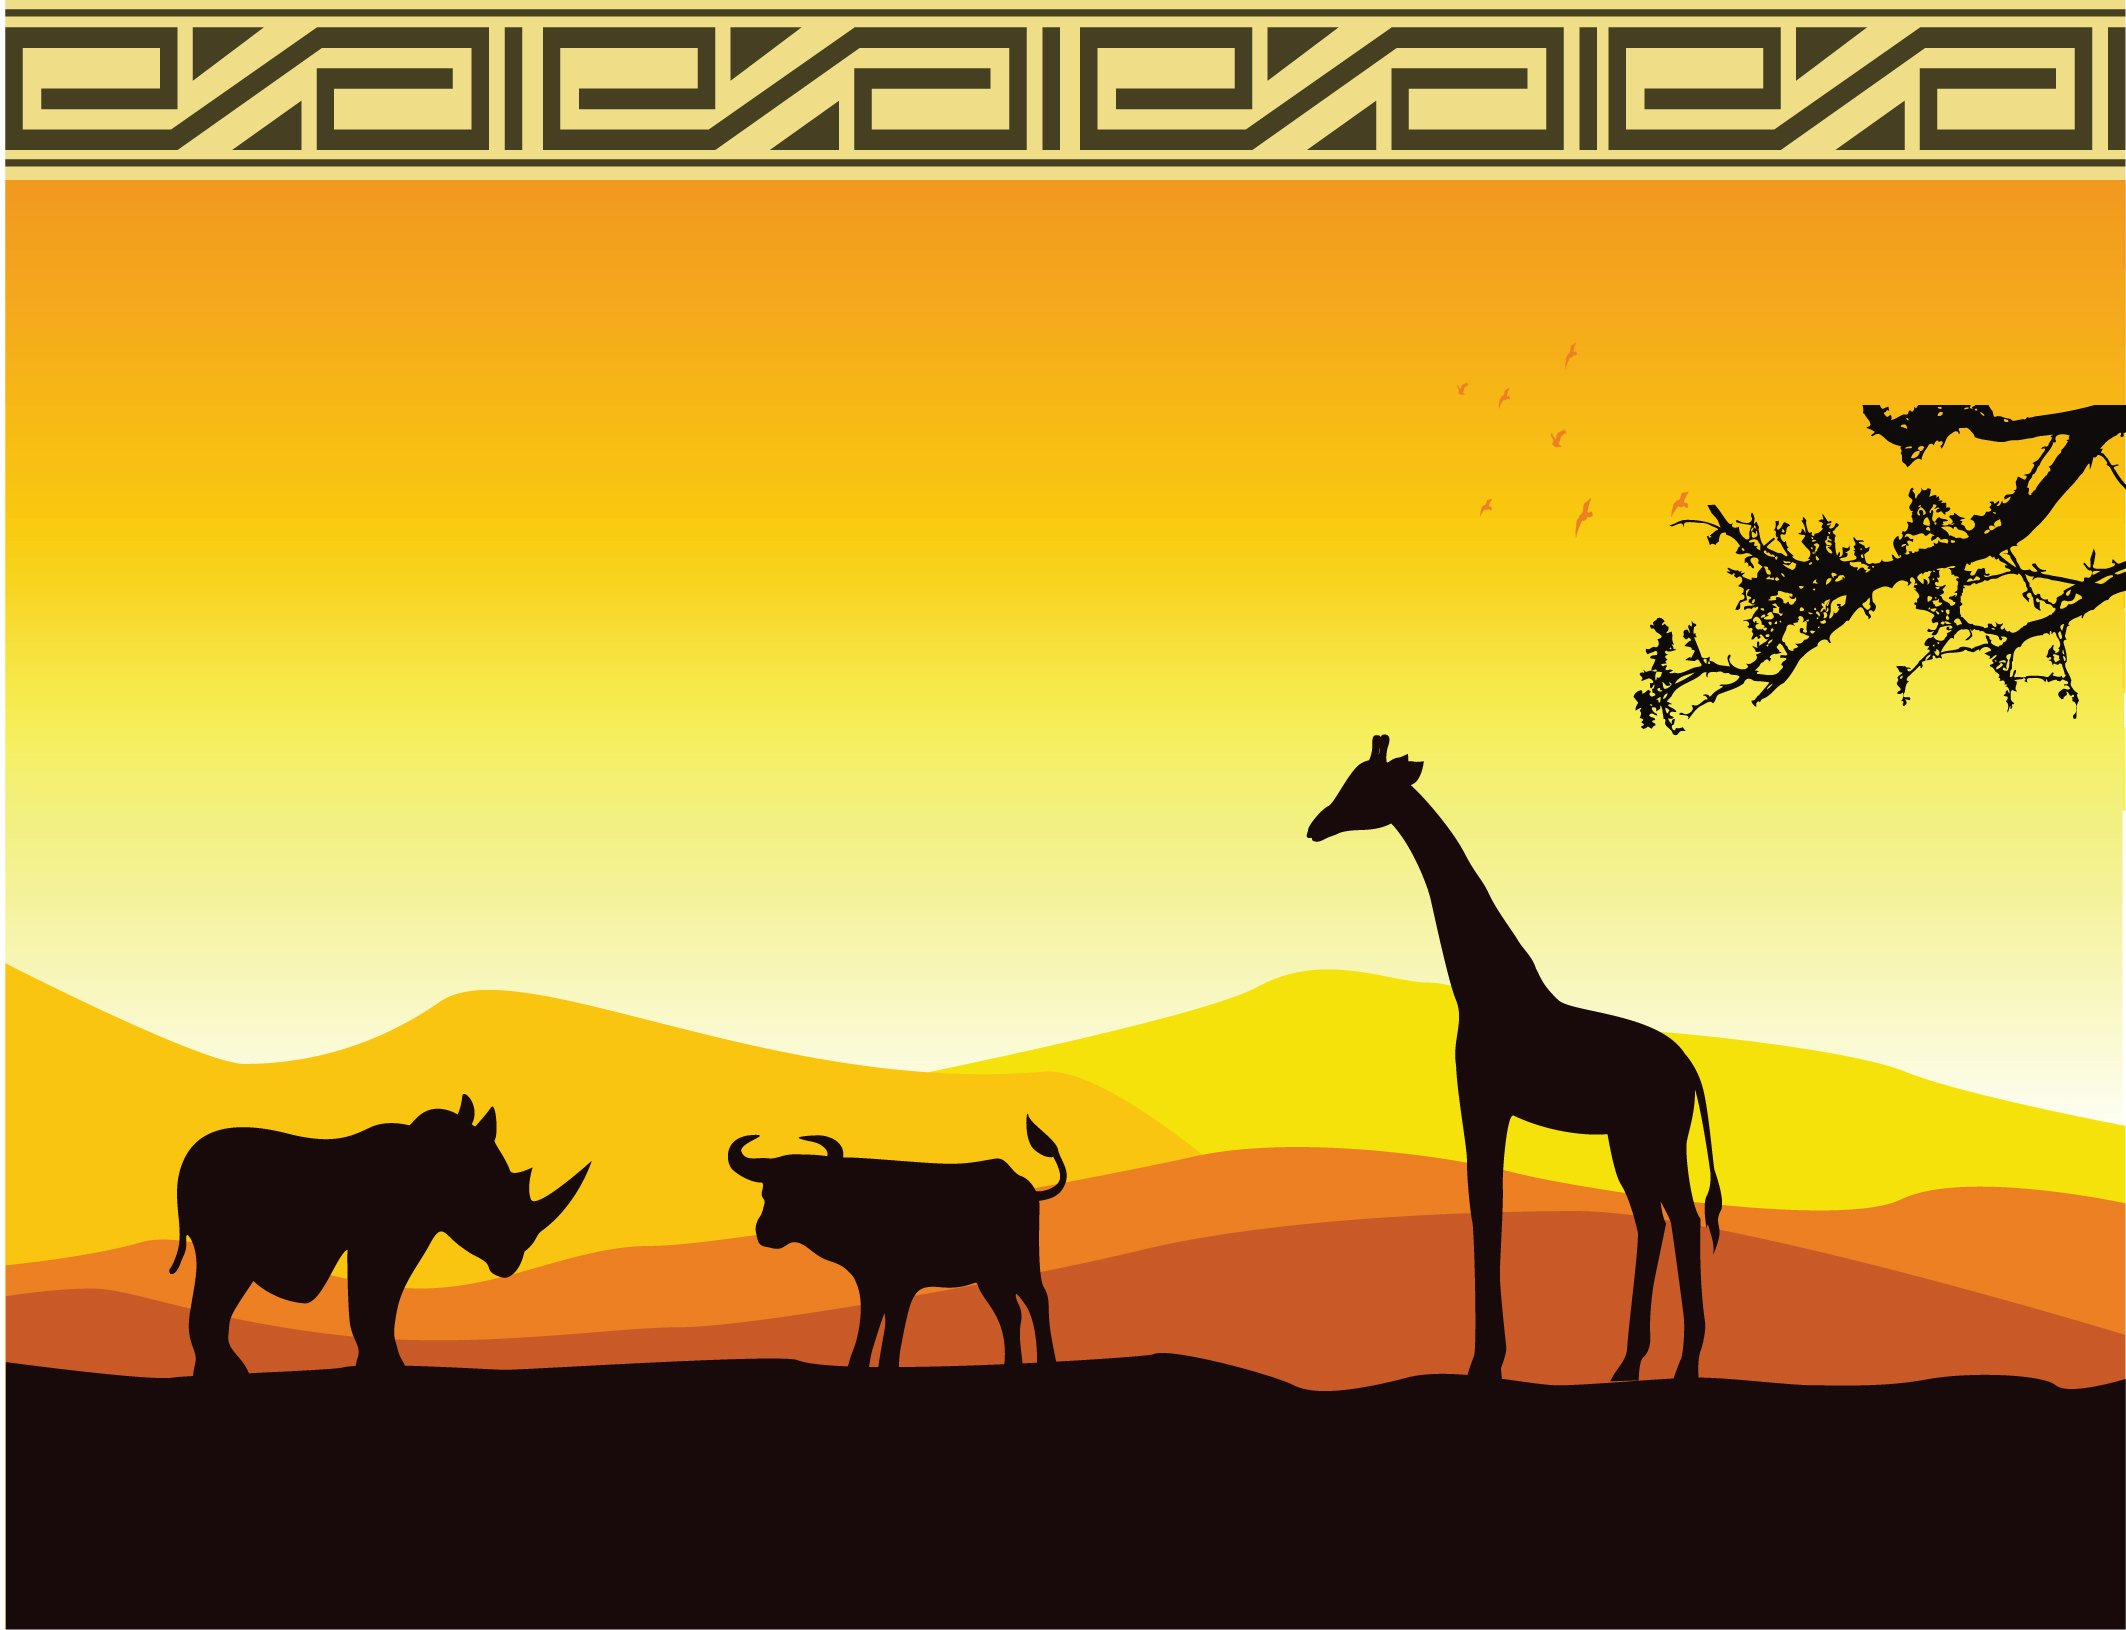 African backdrop right side 3m x 2.4m $60 incl frames & gst